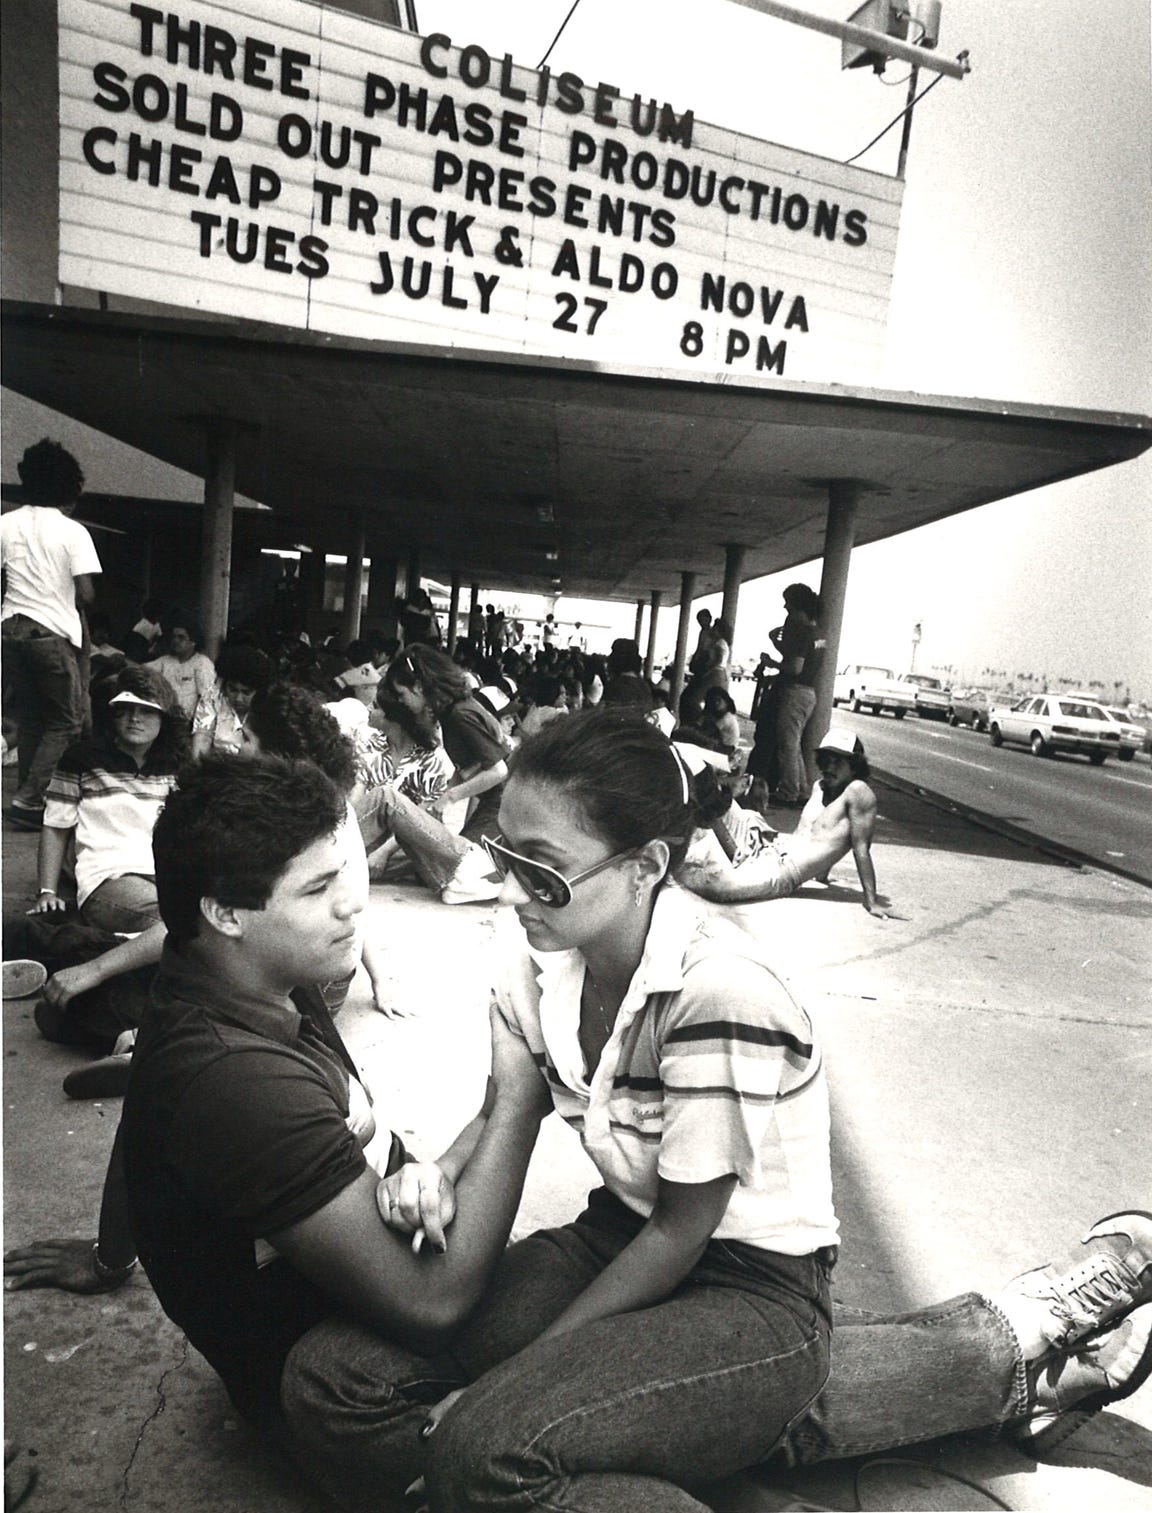 Veronica Garza, 17, and boyfriend Richard Perez, 17, wait in line in front of Memorial Coliseum in Corpus Christi on July 27, 1982 for the Cheap Trick and Aldo Nova concert.